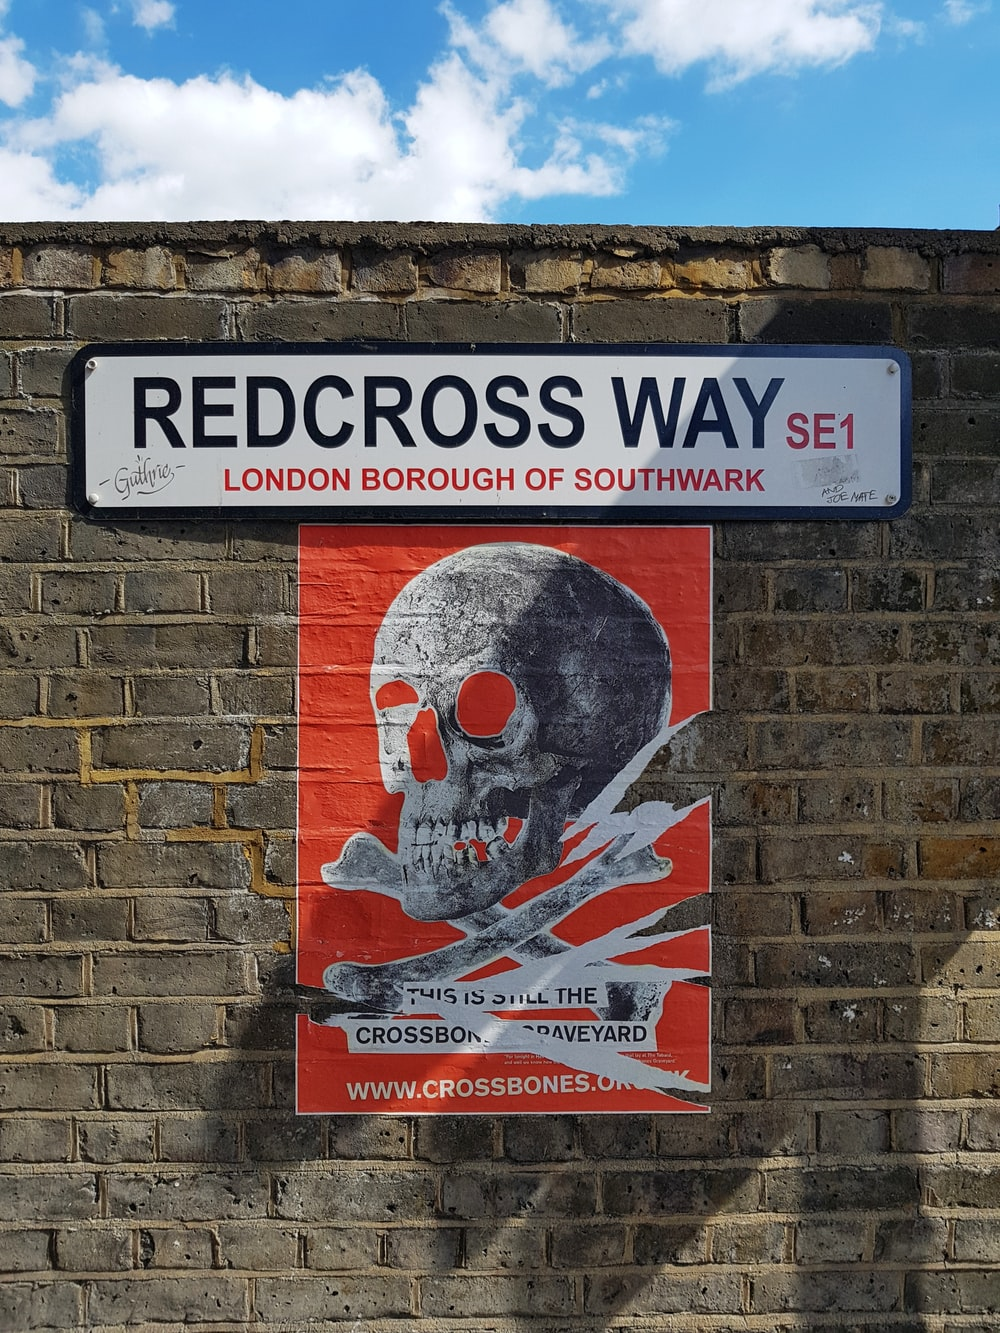 redcross way signage on concrete brick wal